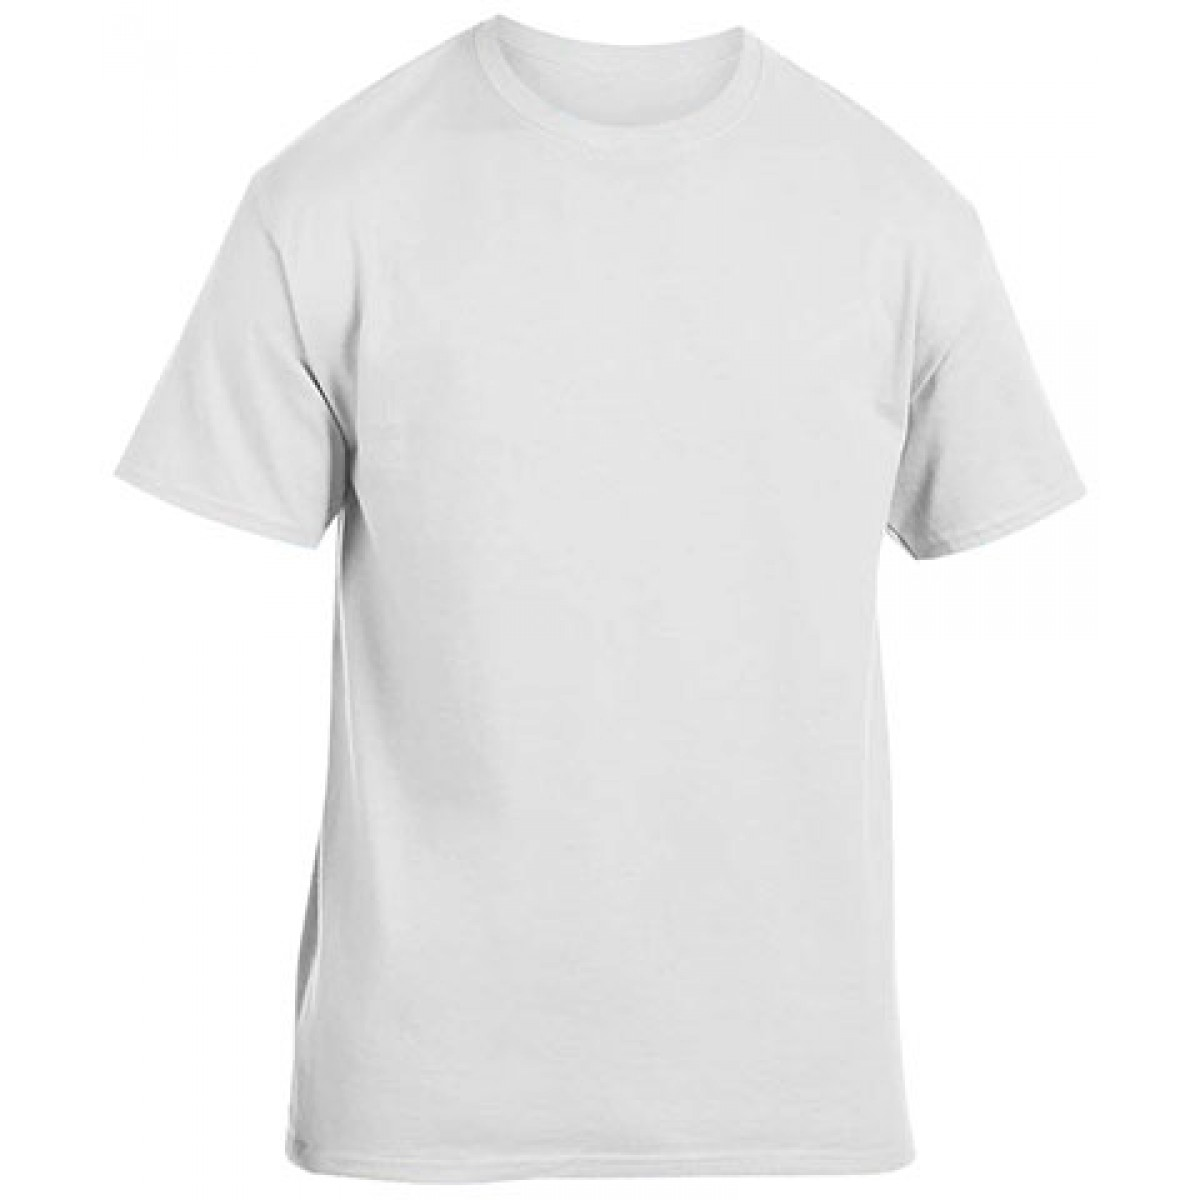 Heavy Cotton Activewear T-Shirt-White-2XL